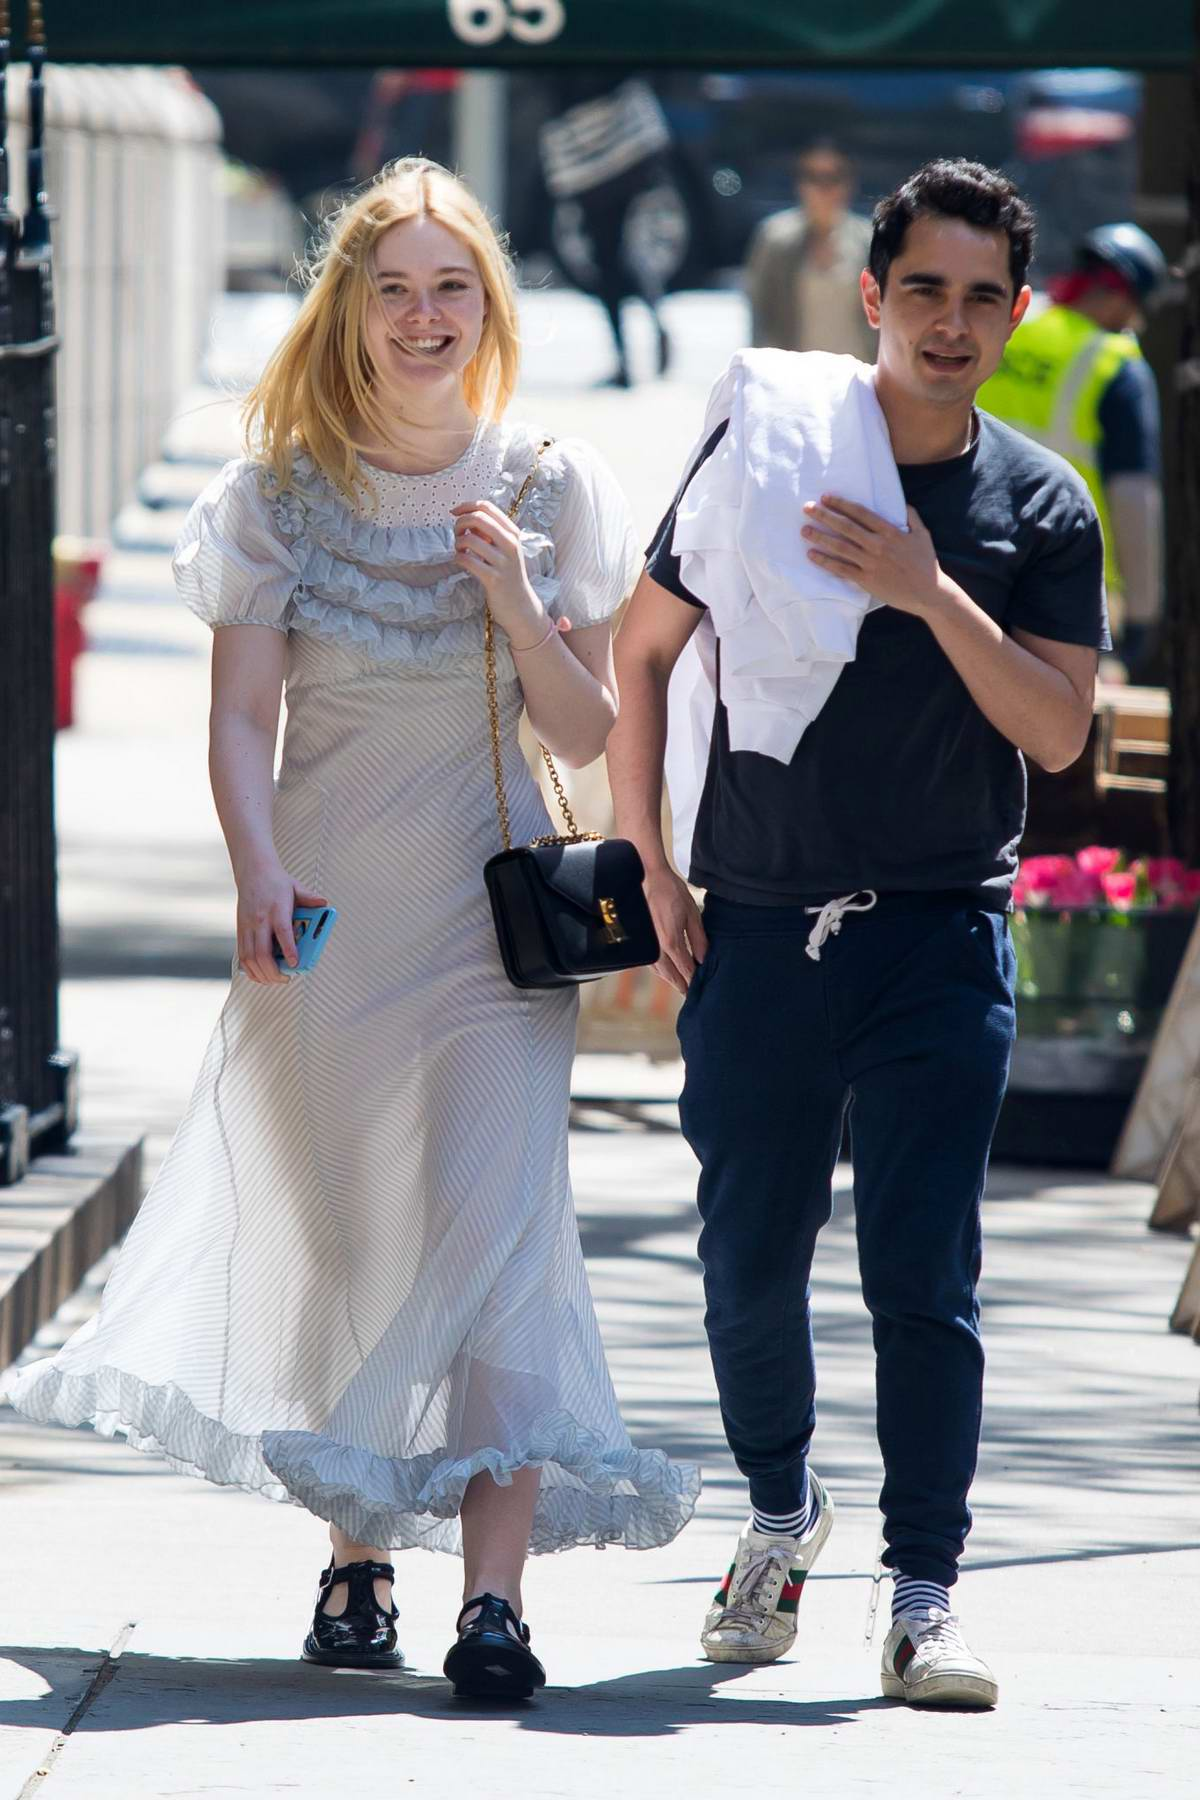 Elle Fanning is all smiles as she steps out with Max Minghella in New York City